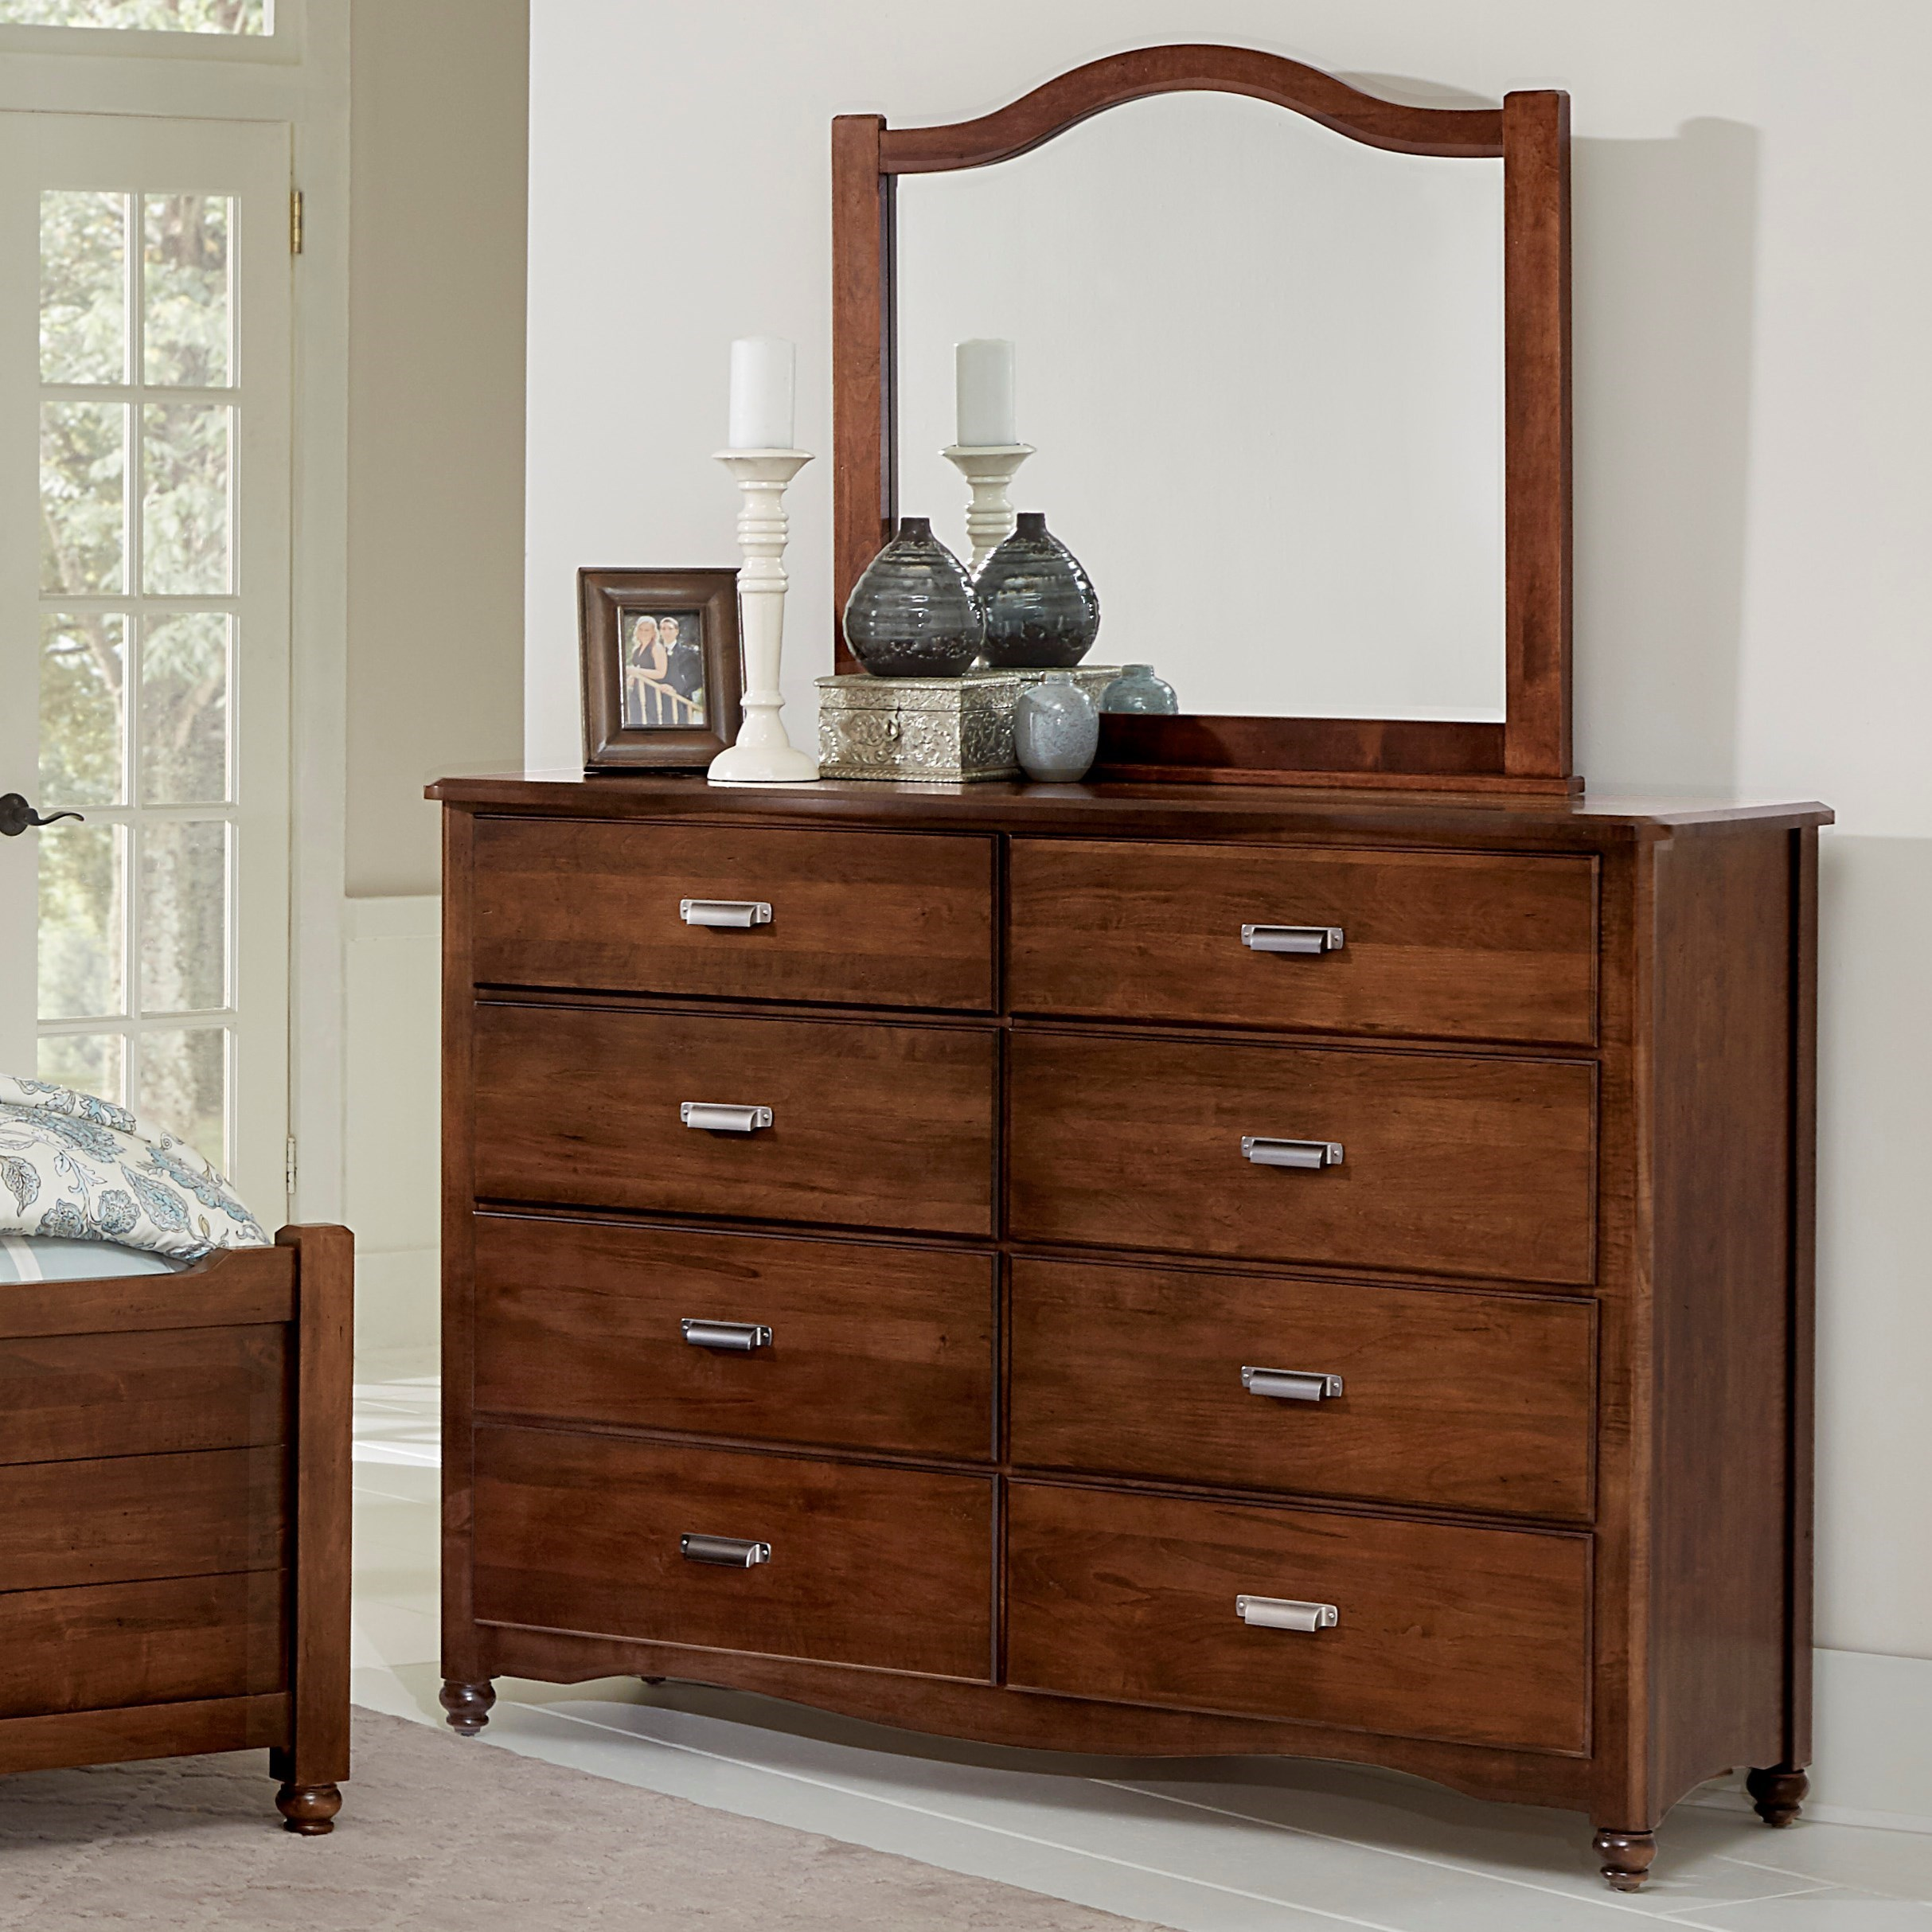 Vaughan Bassett American Maple Solid Wood Bureau Arched Mirror Lapeer Furniture Mattress